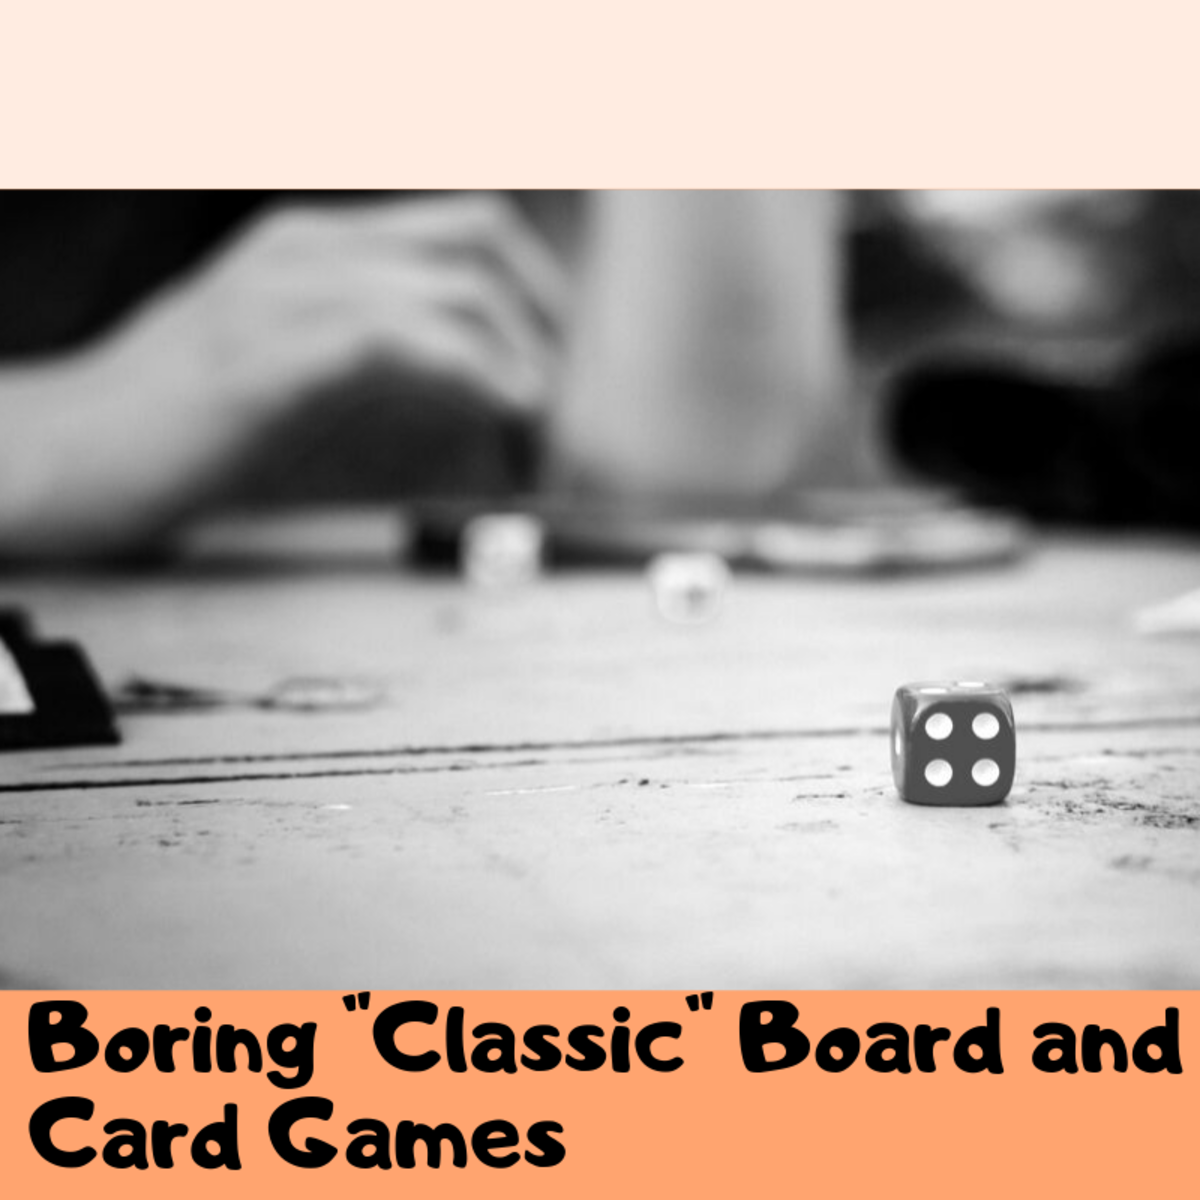 Board and card games are a great way for friends to come together and compete in a variety of fun ways. Unfortunately, these games will put you to sleep.